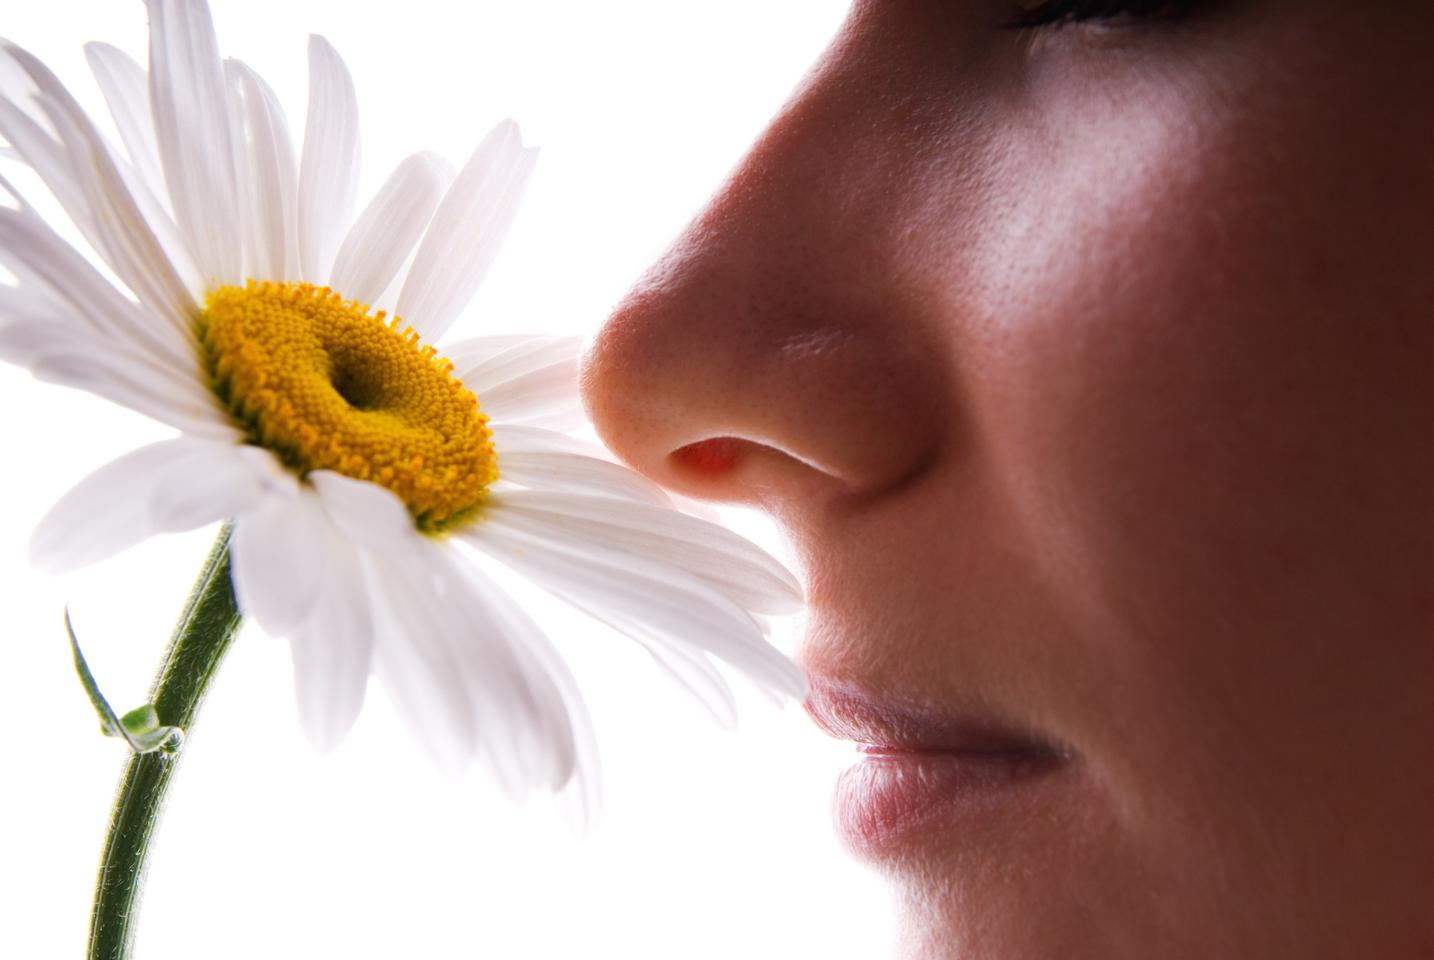 The neuroimaging study found our olfactory sense has a unique direct connection to the hippocampus, unlike all other senses